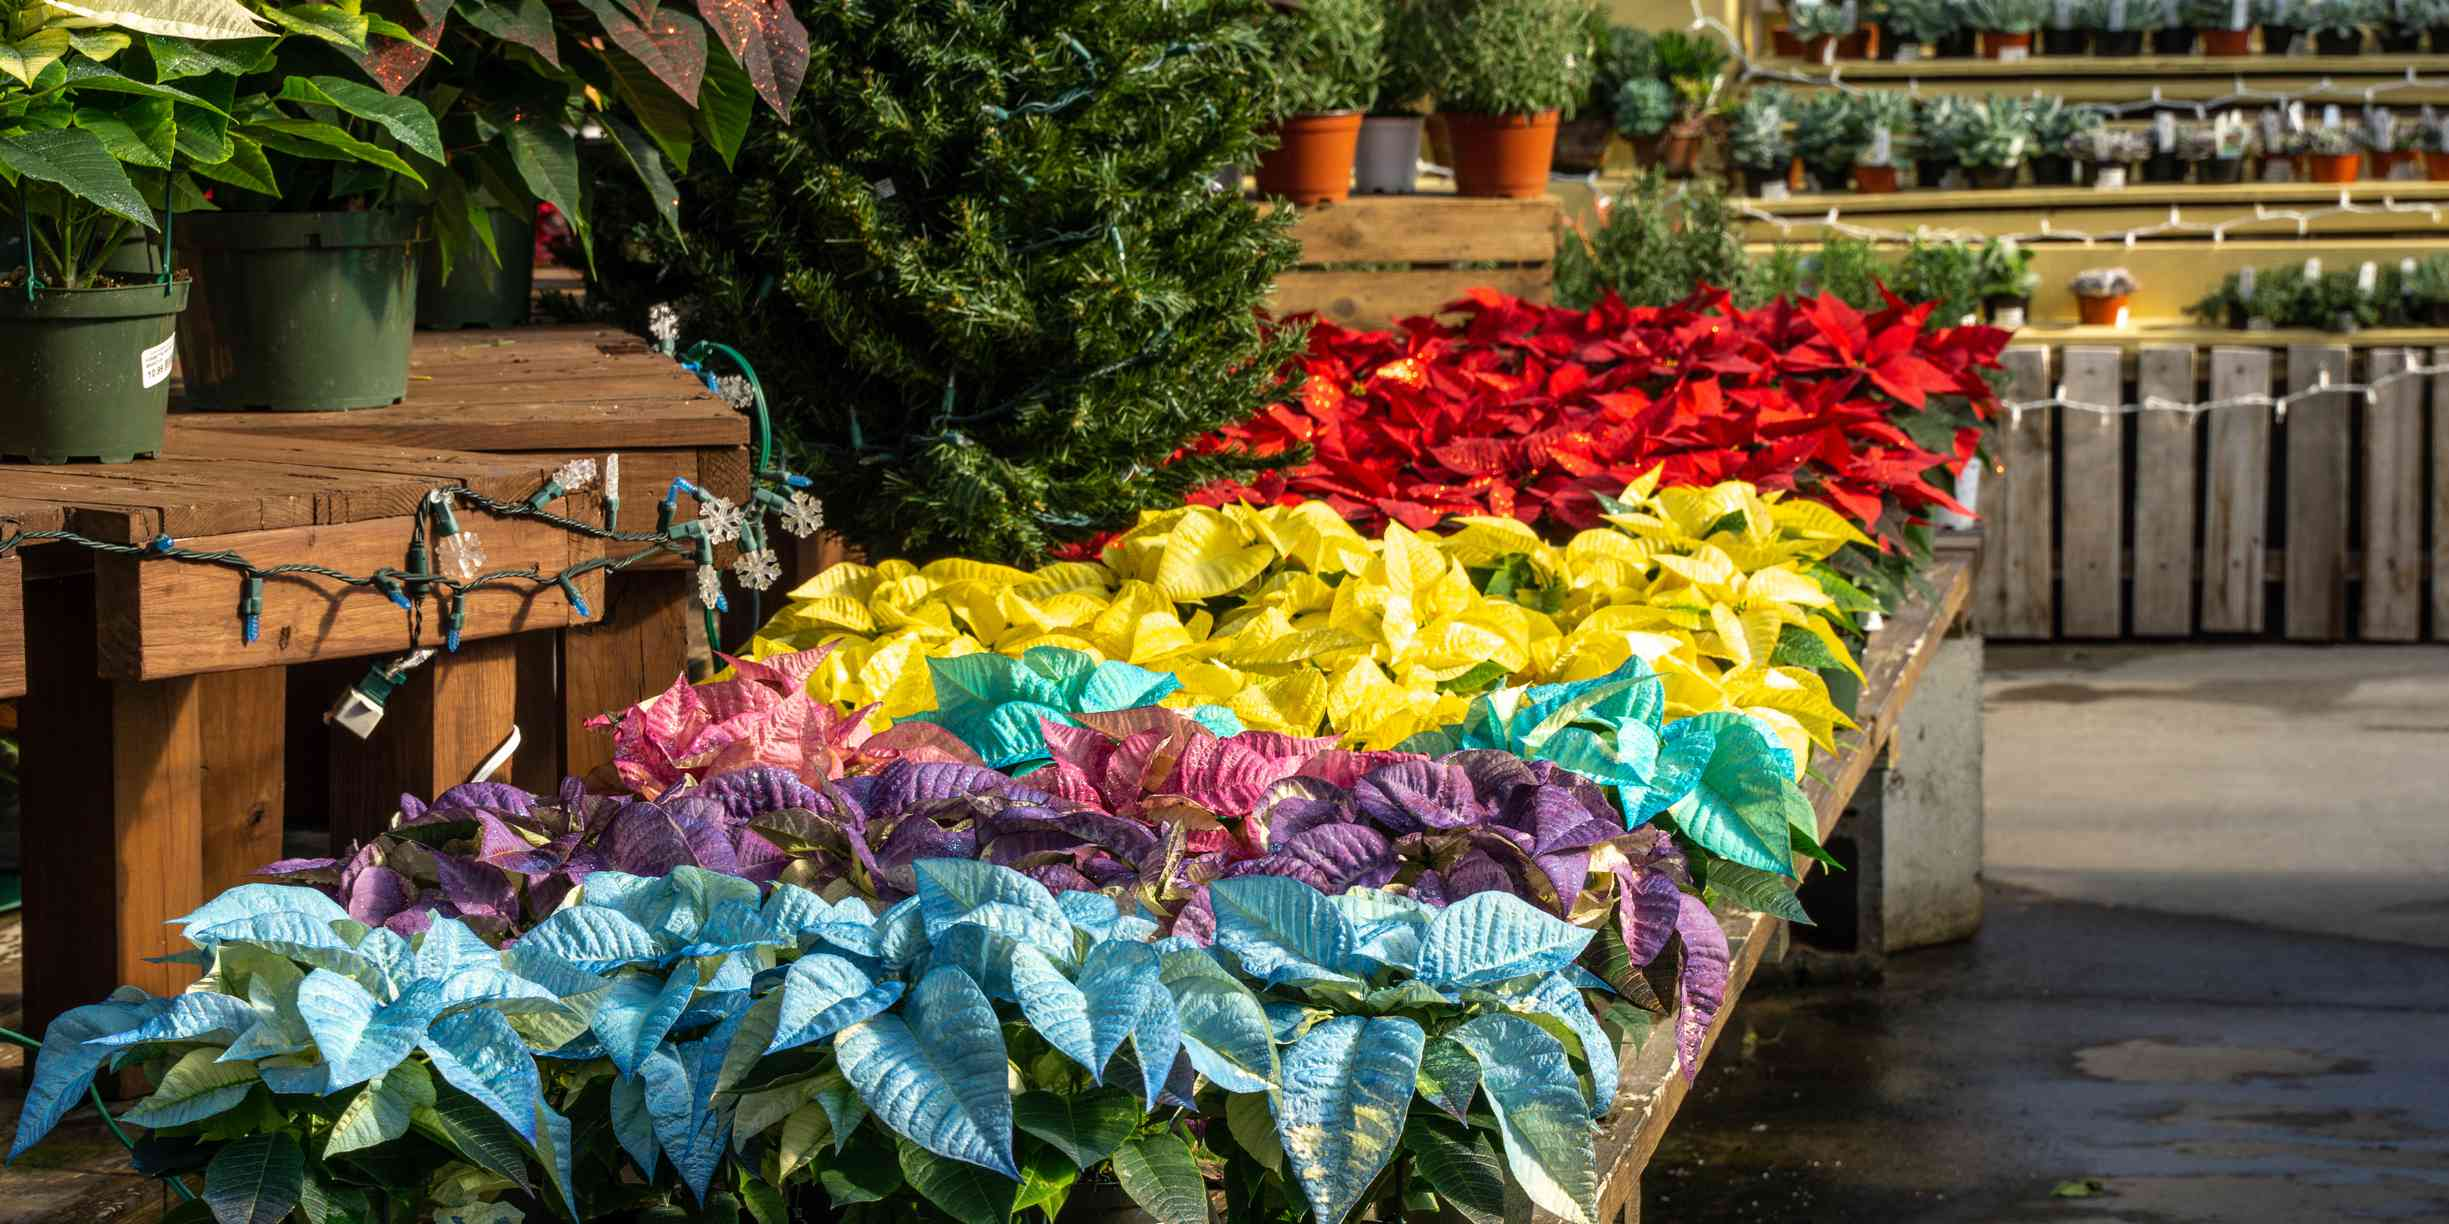 Colorful poinsettia plants at greenhouse